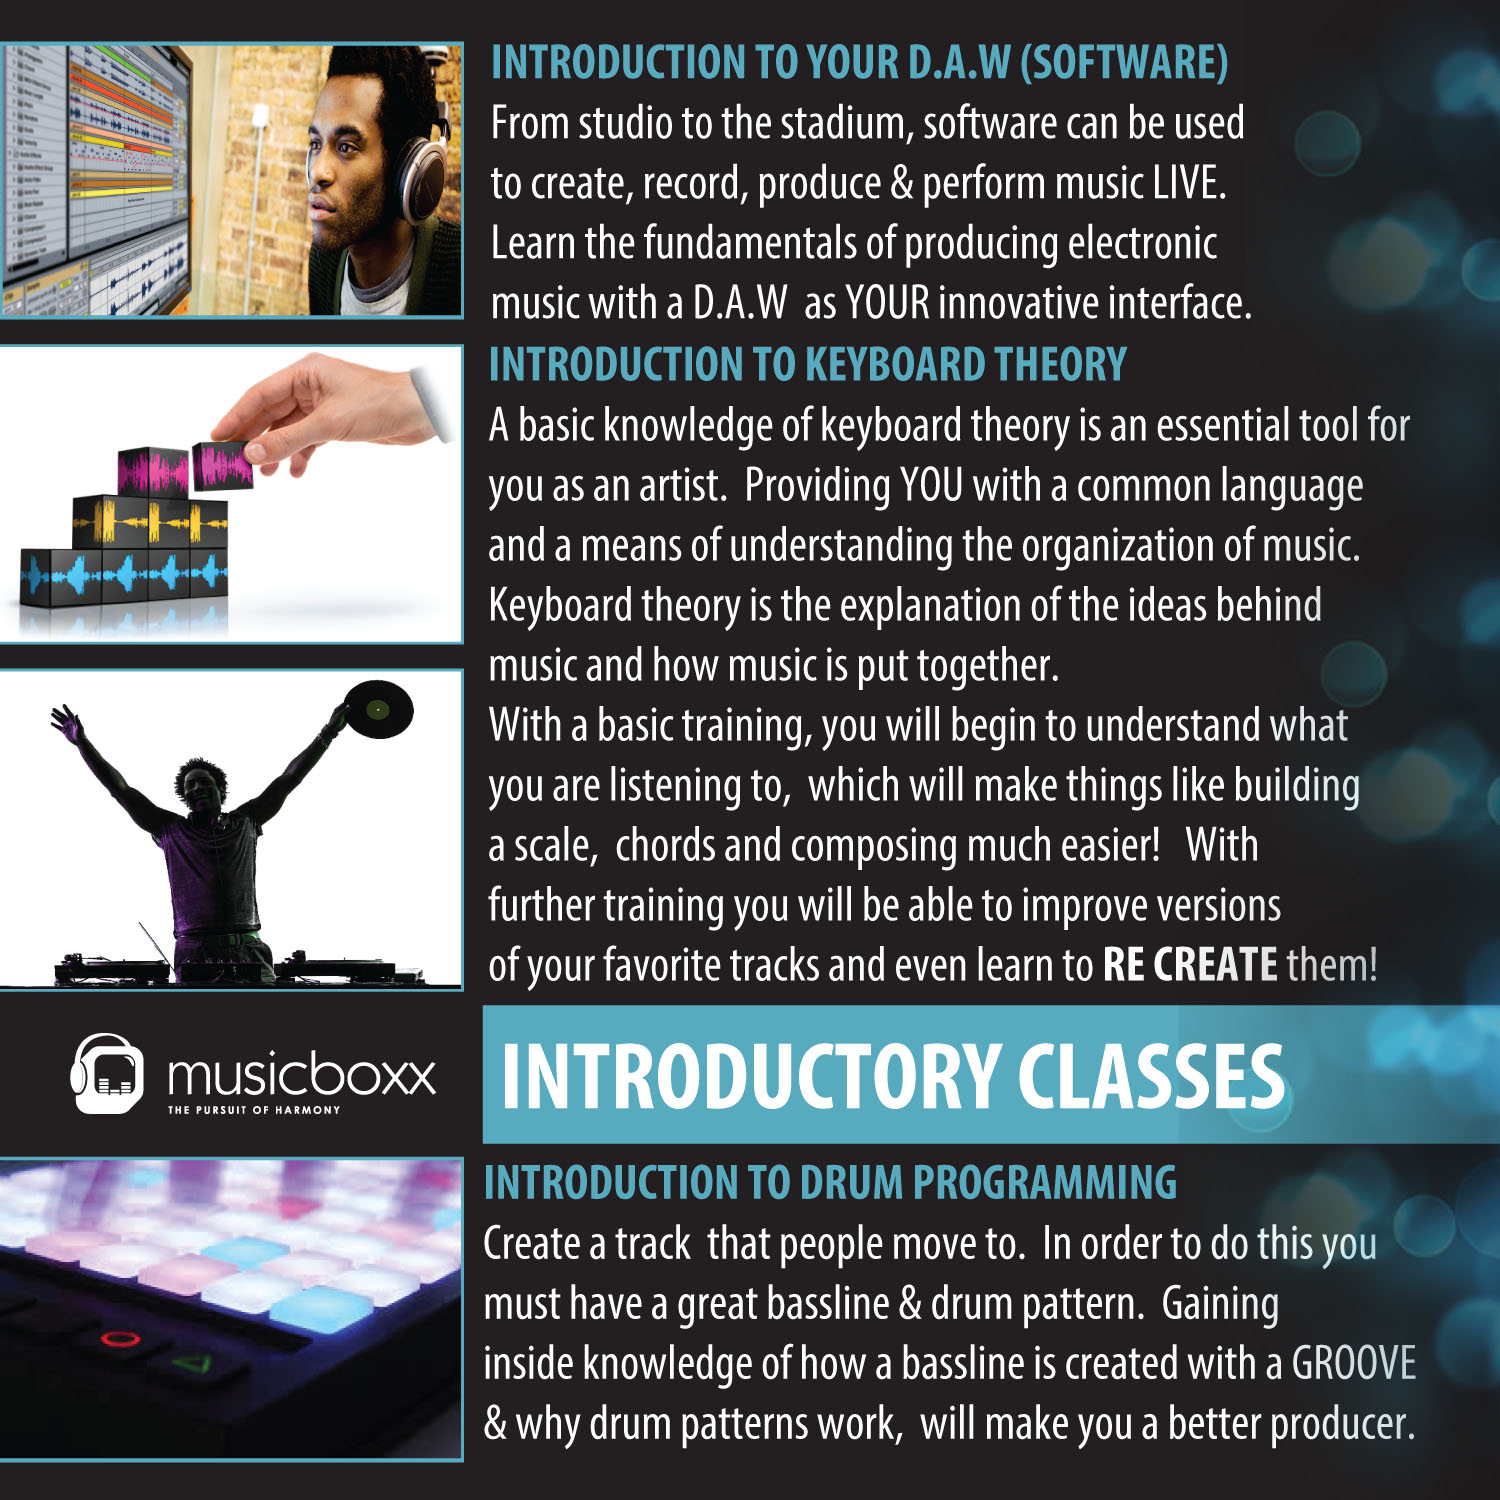 INTRODUCTORY CLASSES